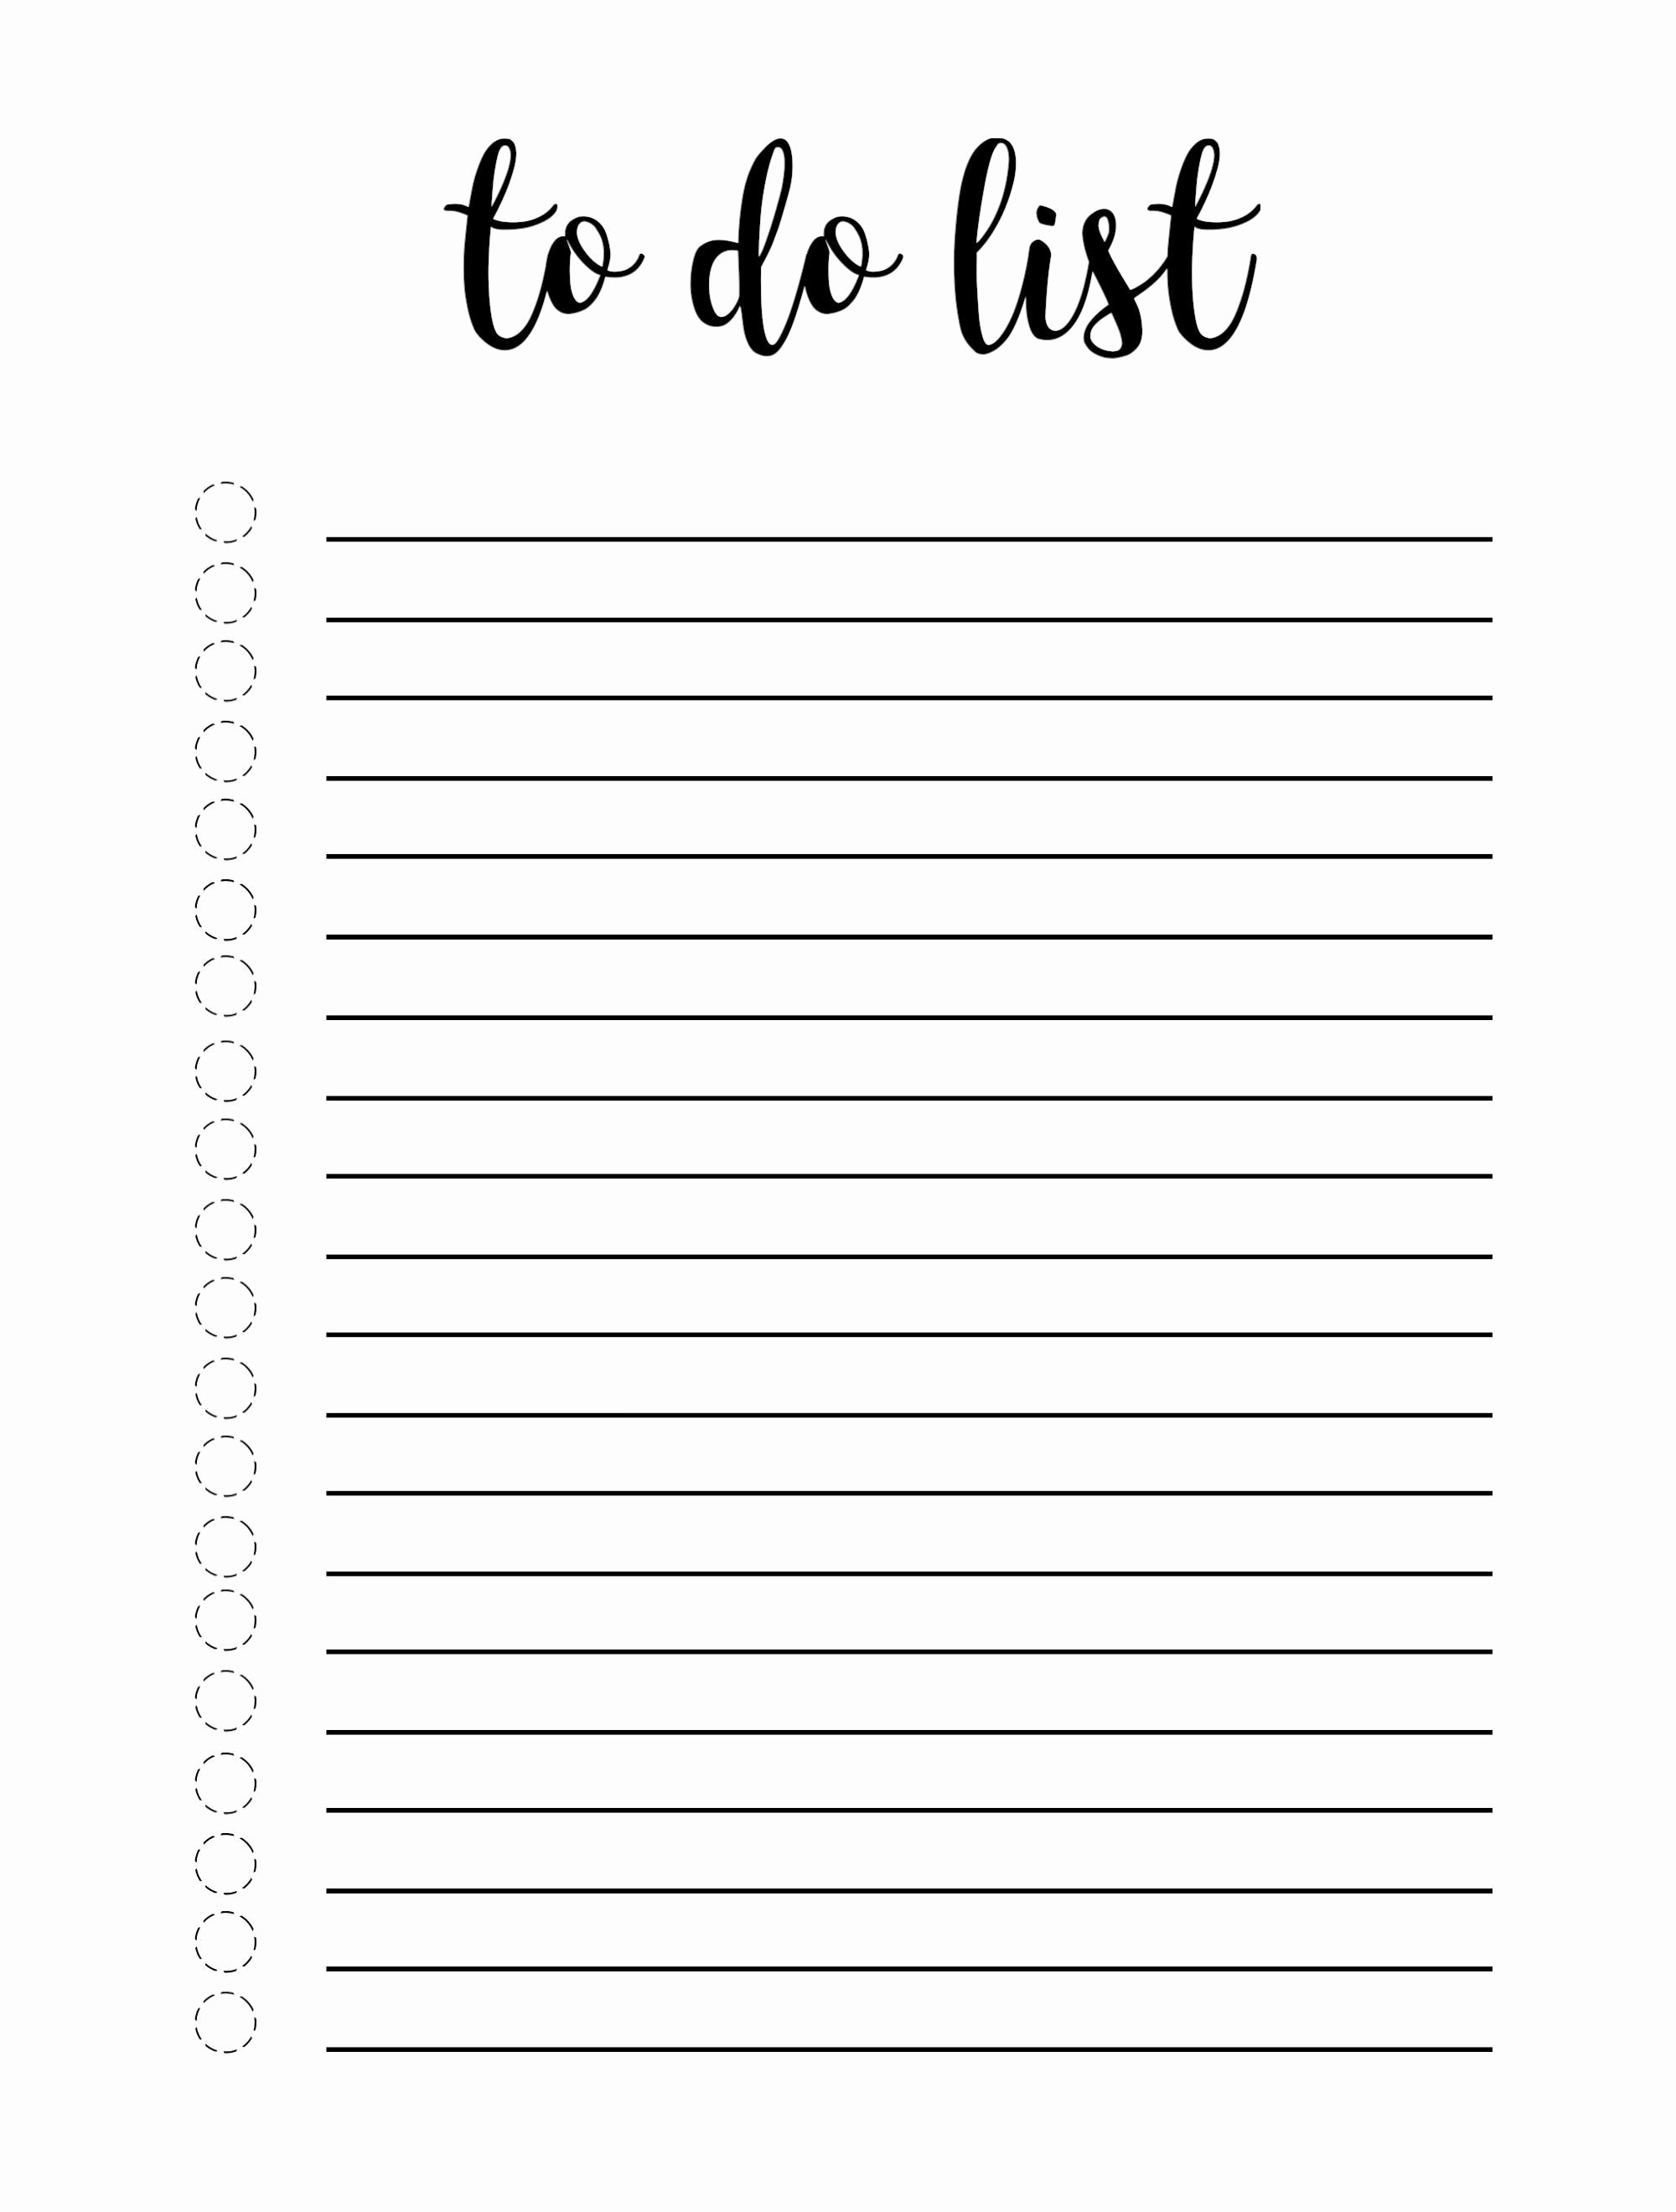 To Do List Word Template Luxury Cute to Do List Template Word Excel E Platform for